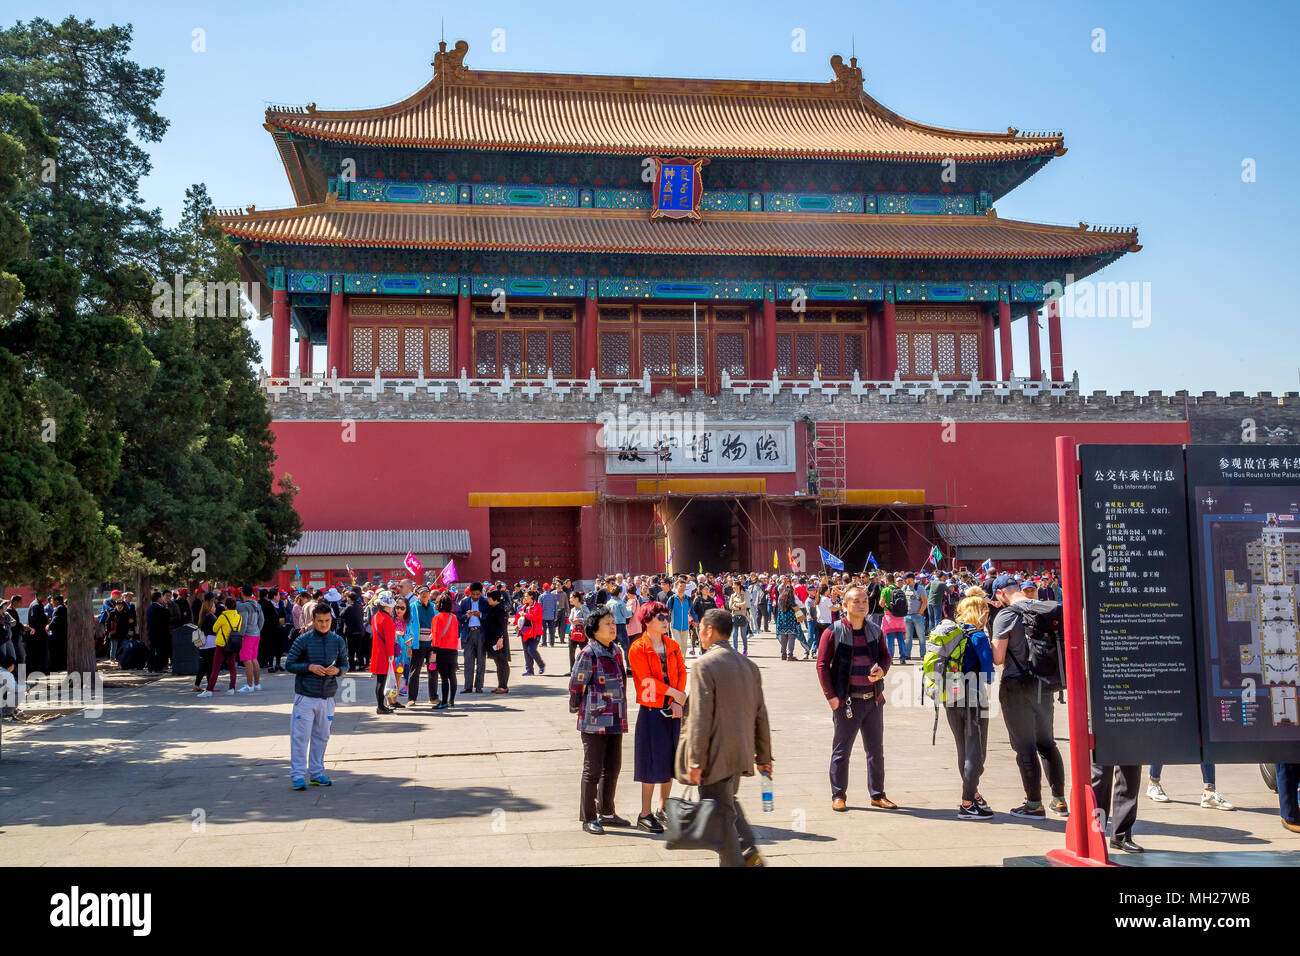 Palace Museum, Forbidden City, Beijing, China - Crowds of tourists gather at the Gate of Divine Might. Workmen are making repairs above the exit. Stock Photo